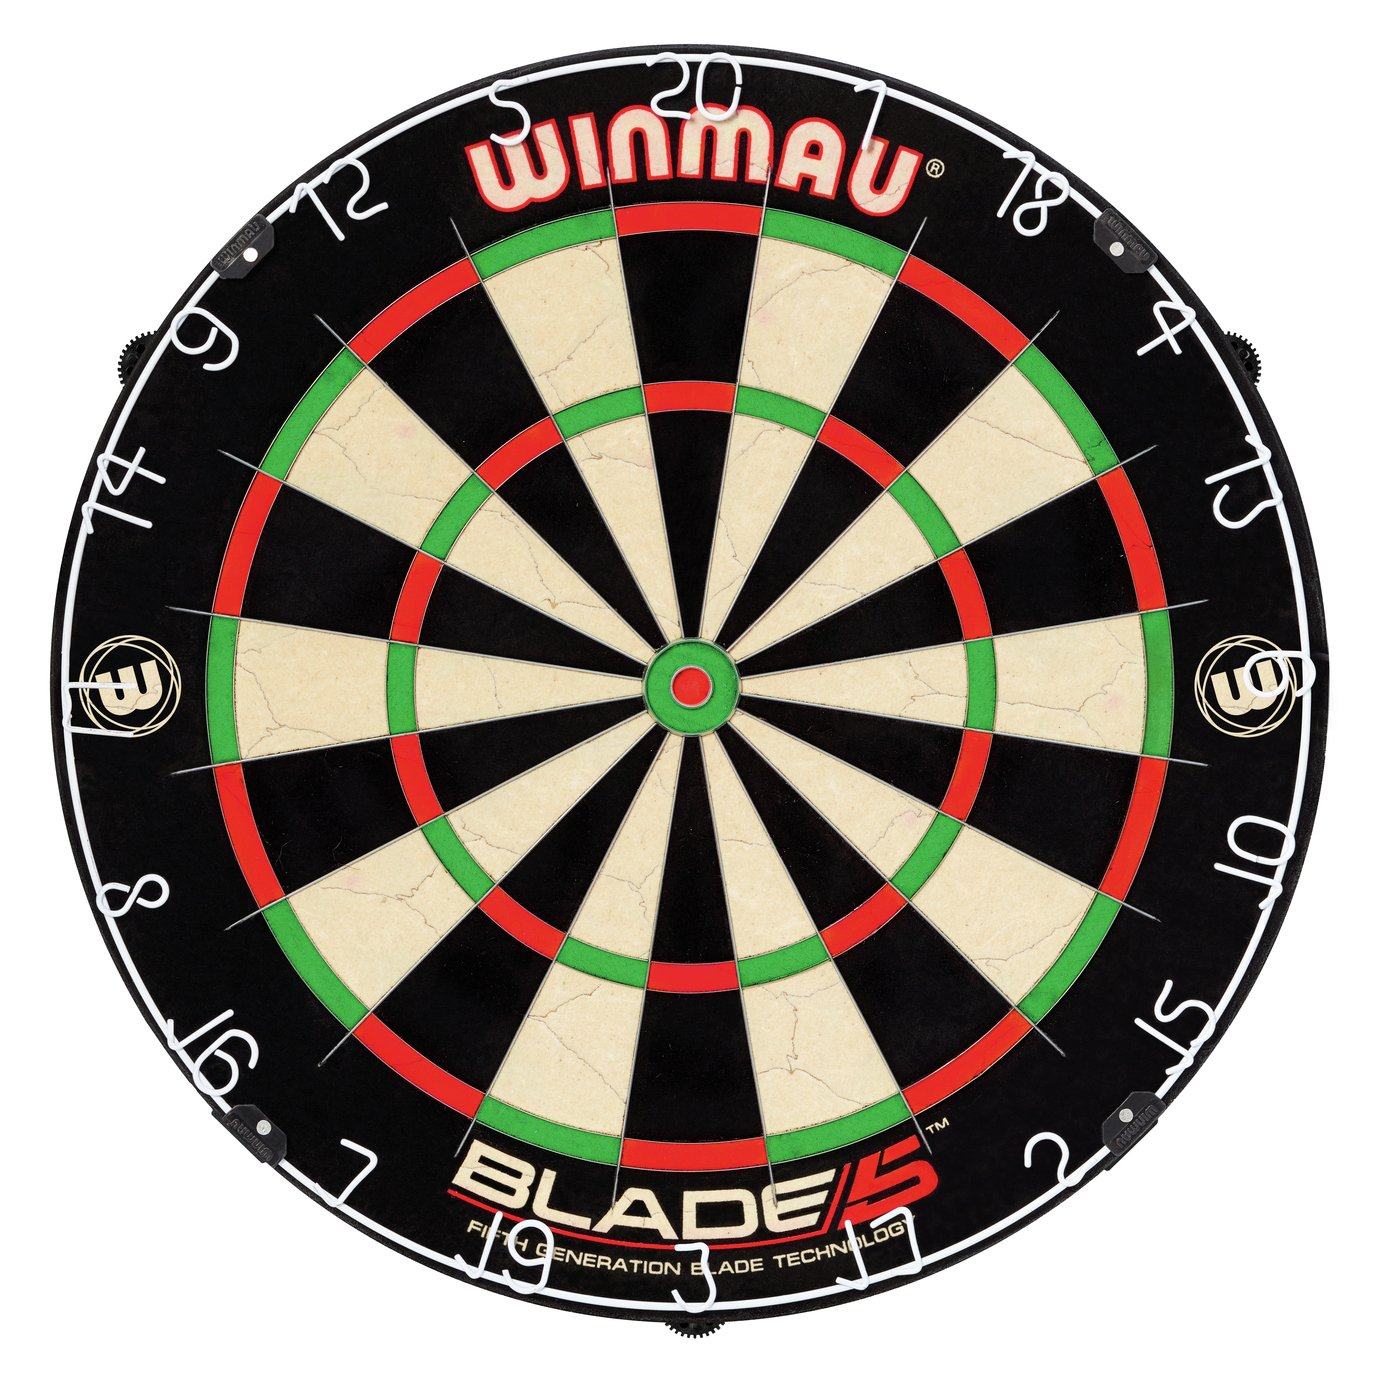 Winmau Blade 5 Bristle Dartboard. from Winmau